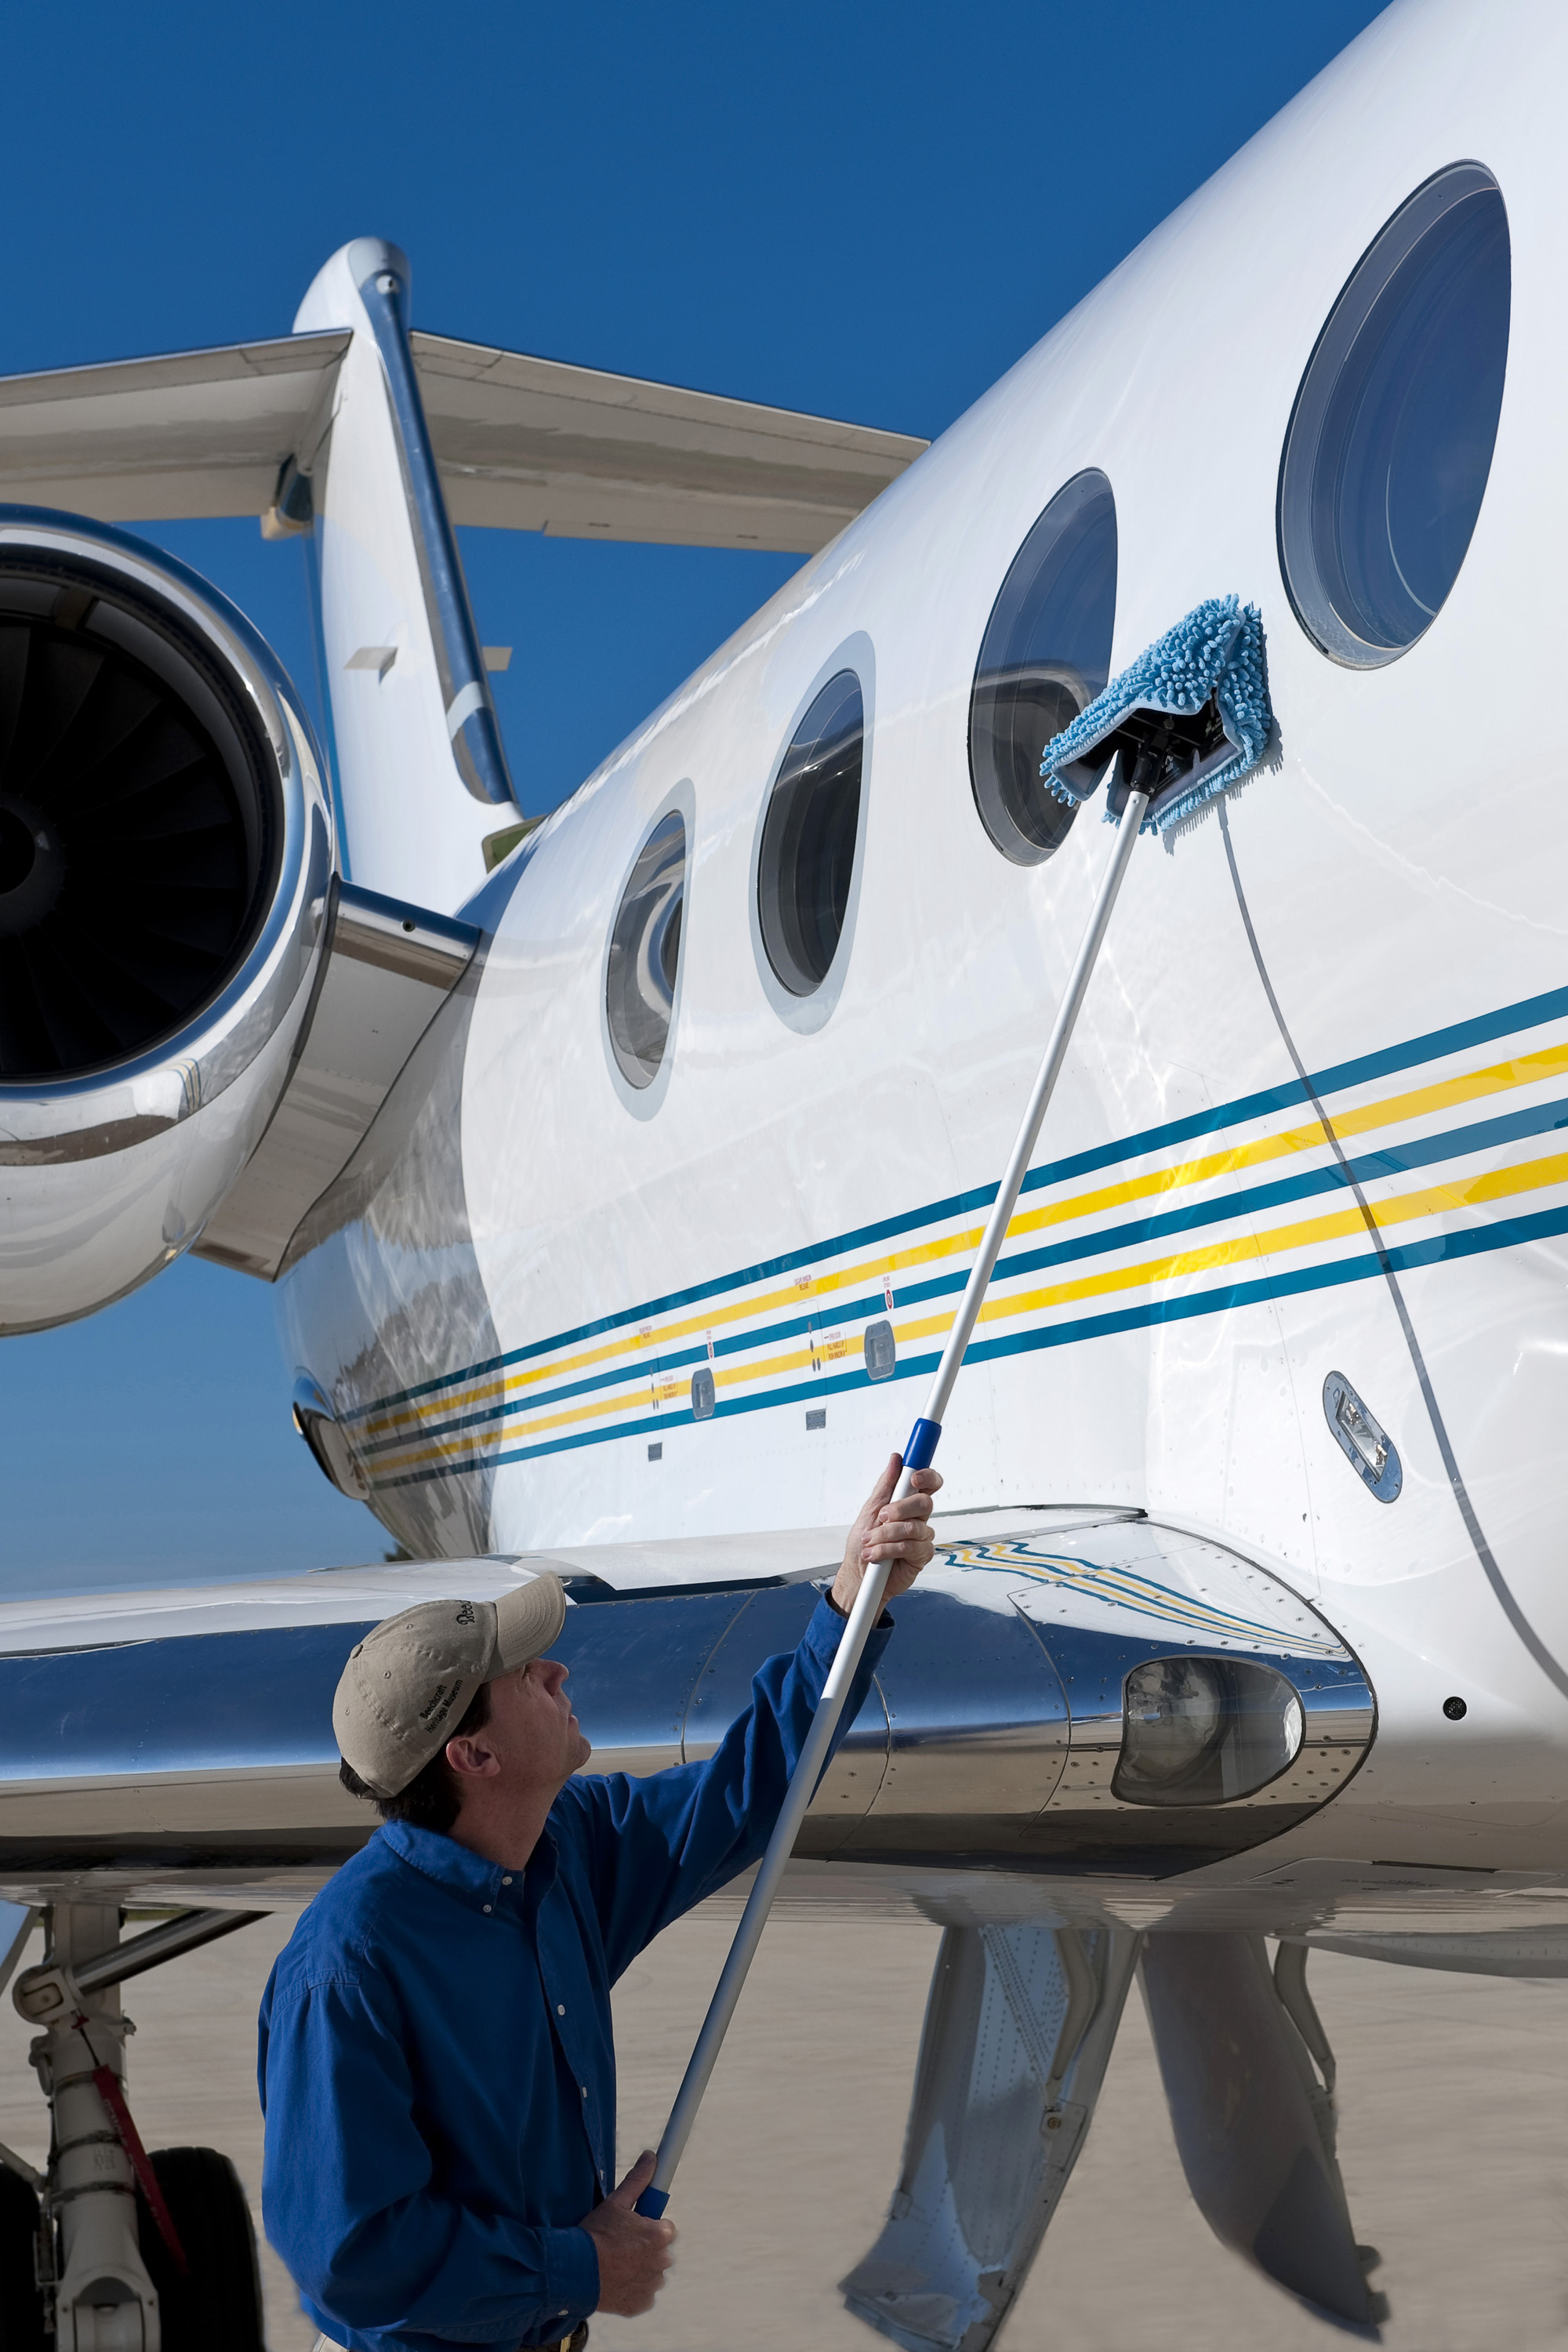 New Wash Wax Mop Advances Waterless Aircraft Cleaning State Of The Art